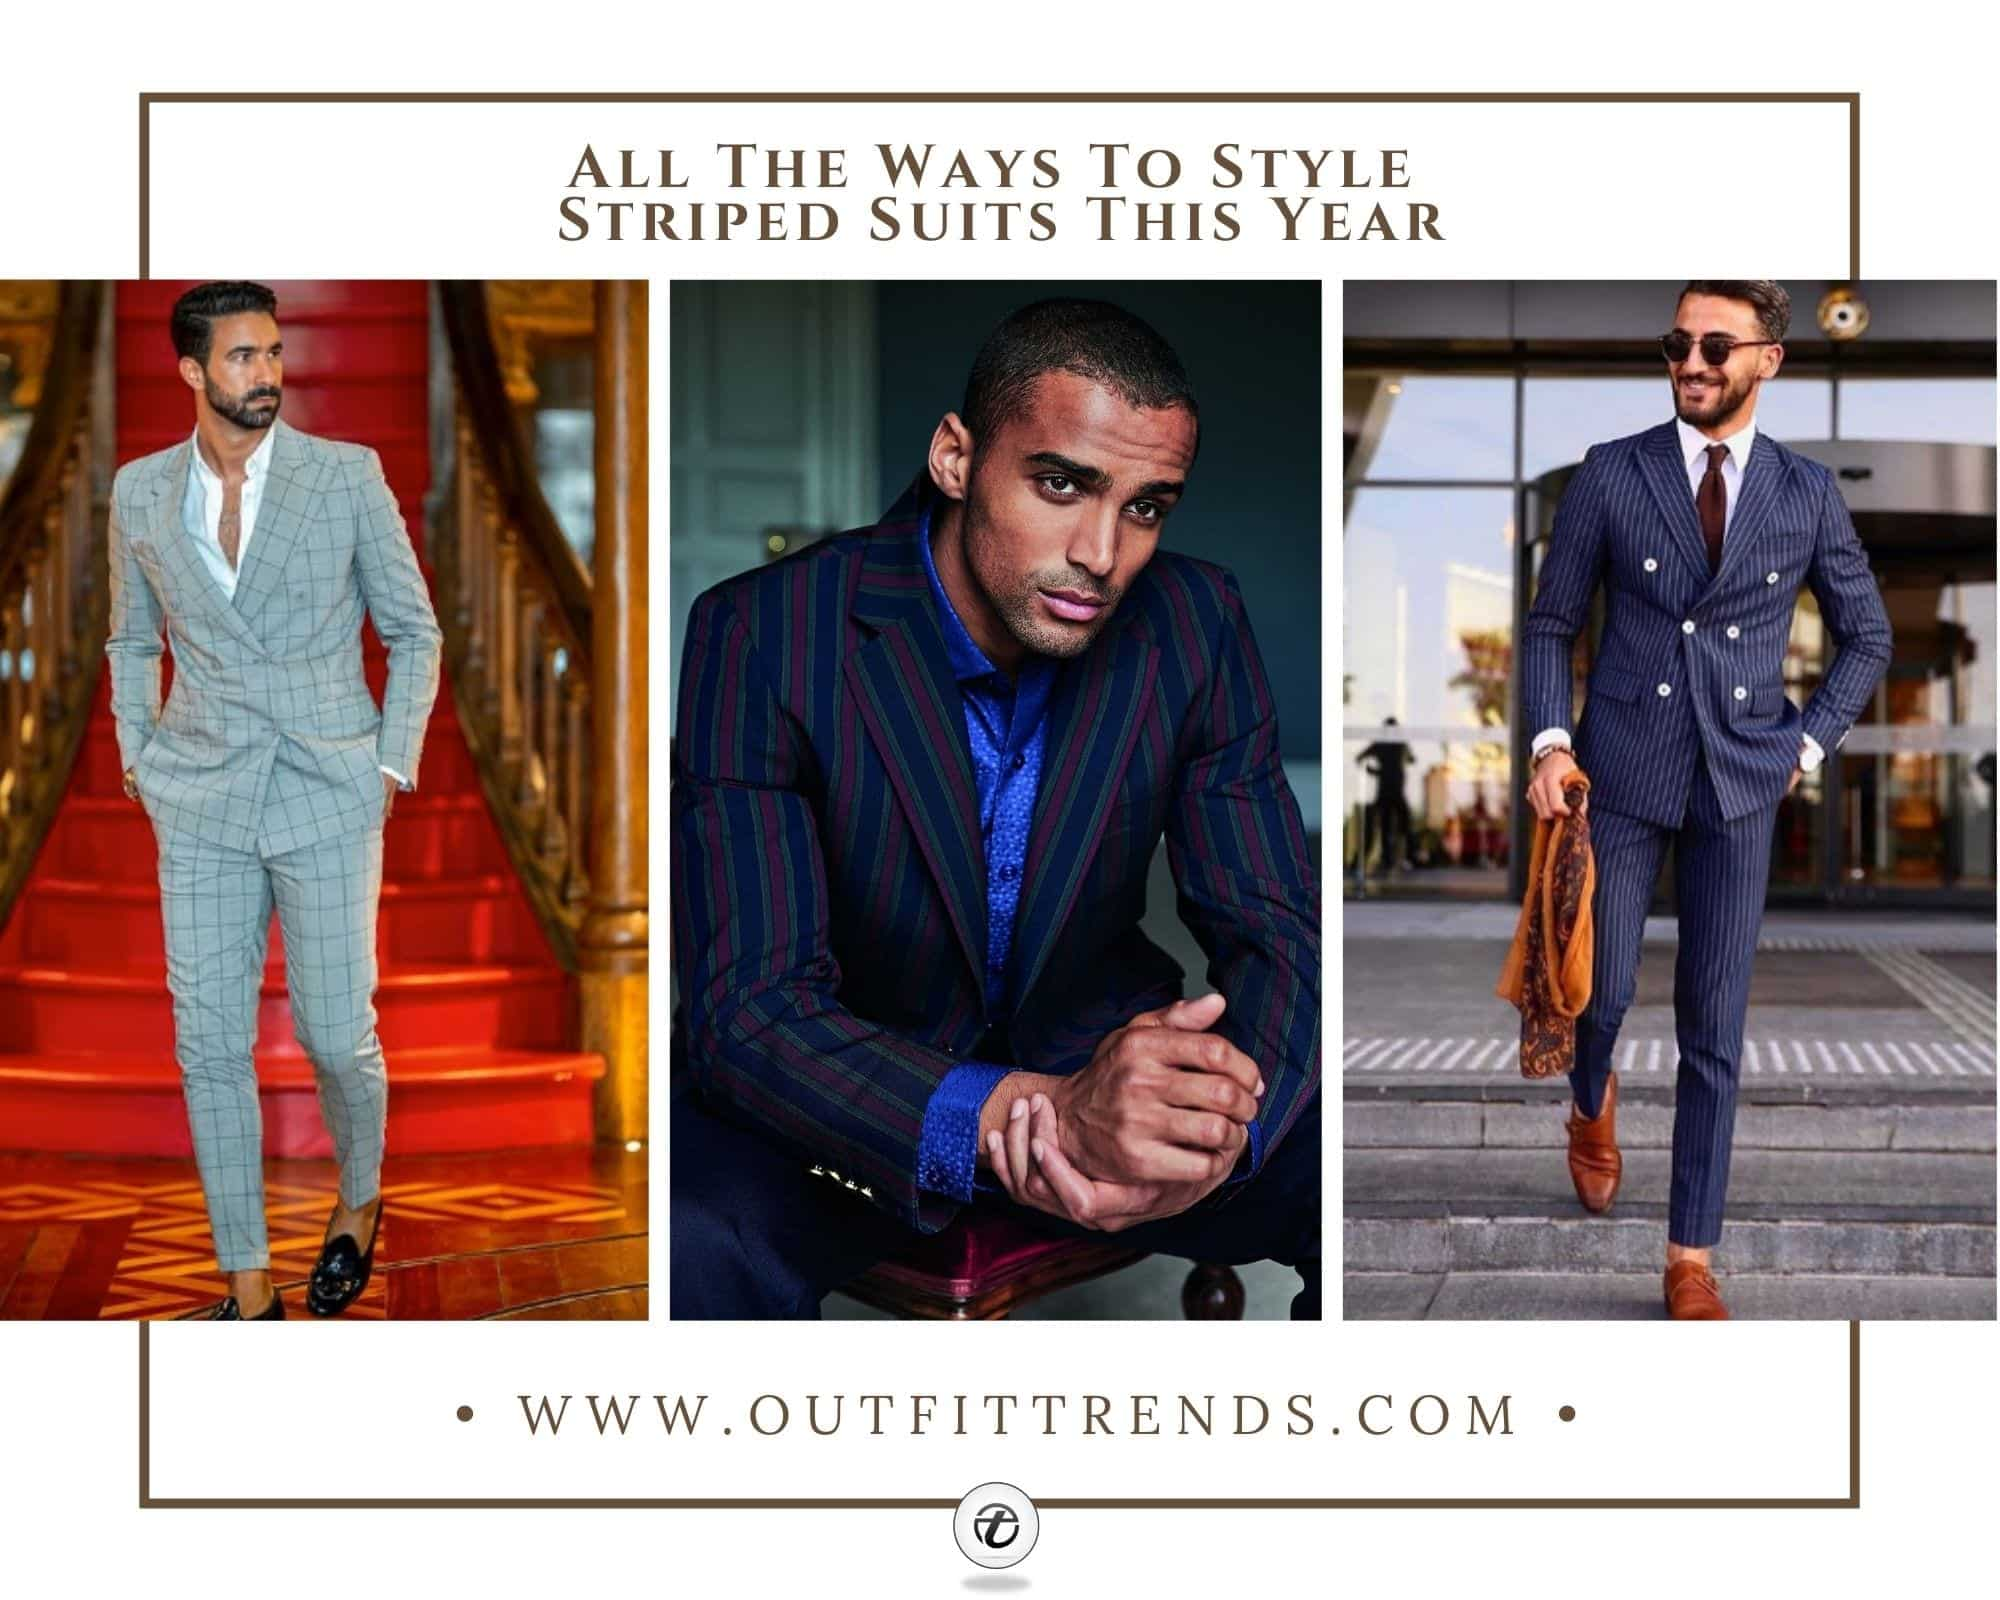 Striped Suits For Men: 20 Best Ways To Wear Pinstripe Suits